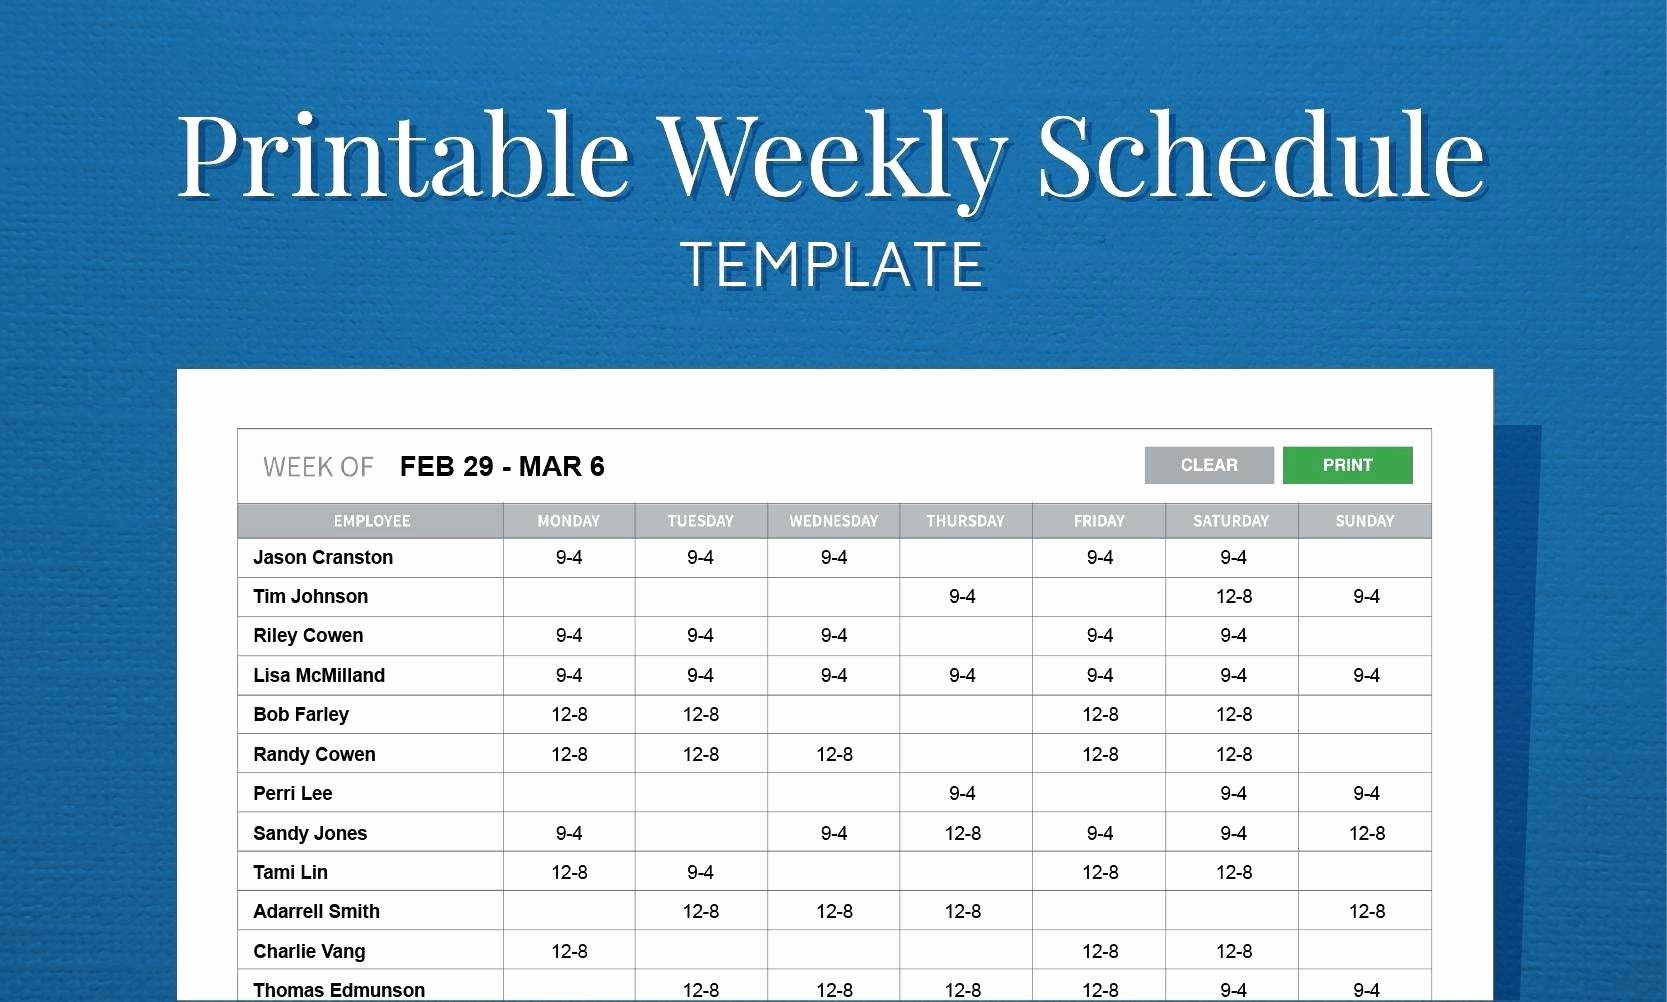 Daily Work Schedule Template Awesome Daily Work Schedule Template